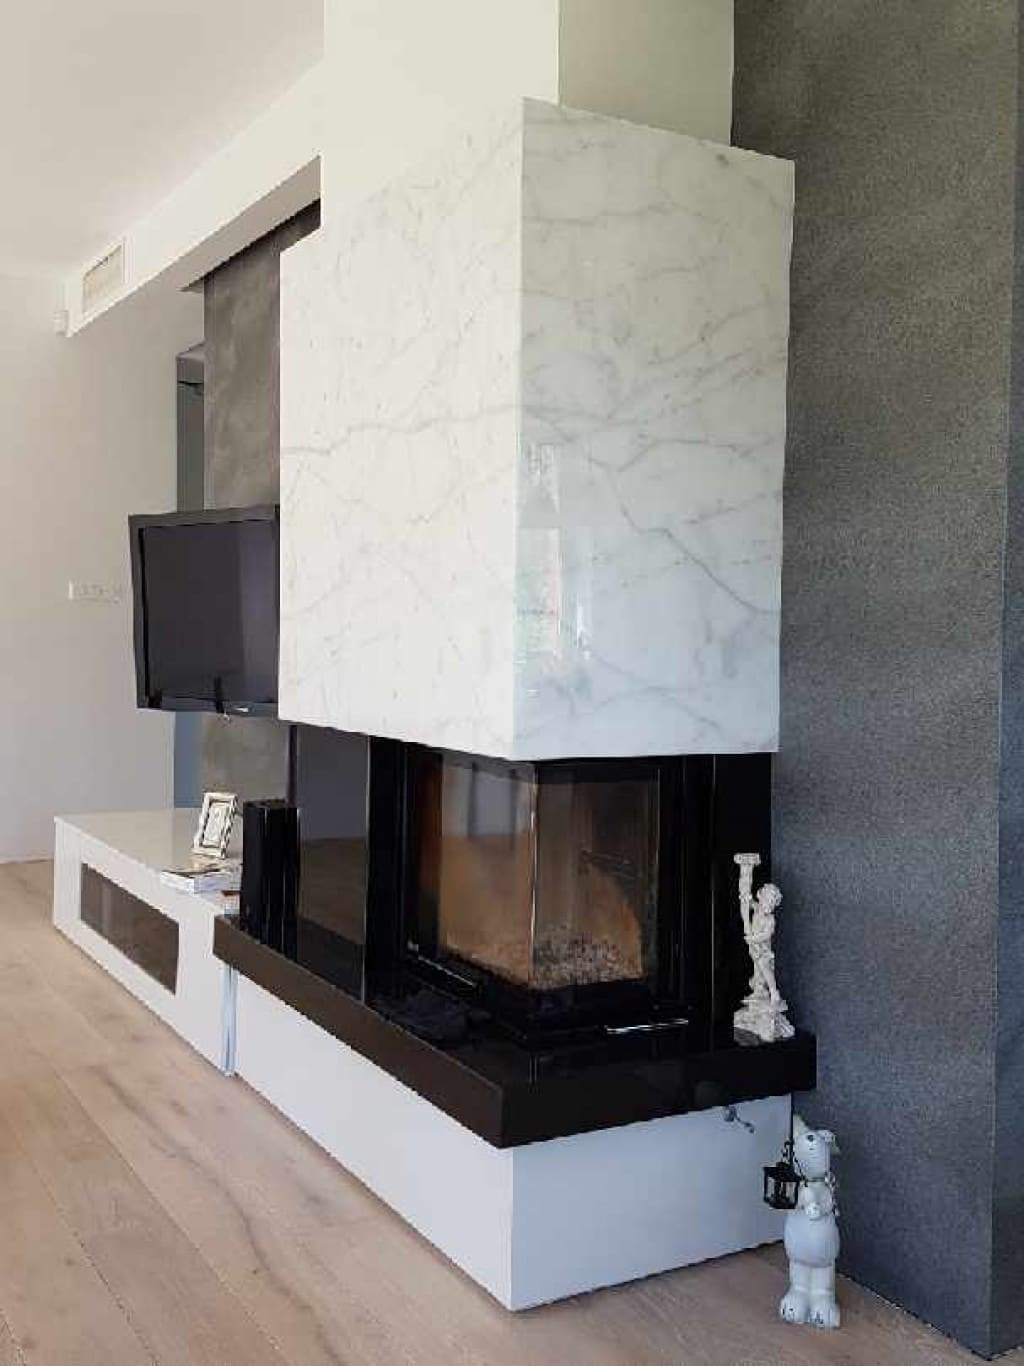 Blog - Marble firestones  –  a stylish finishing element of interior spaces